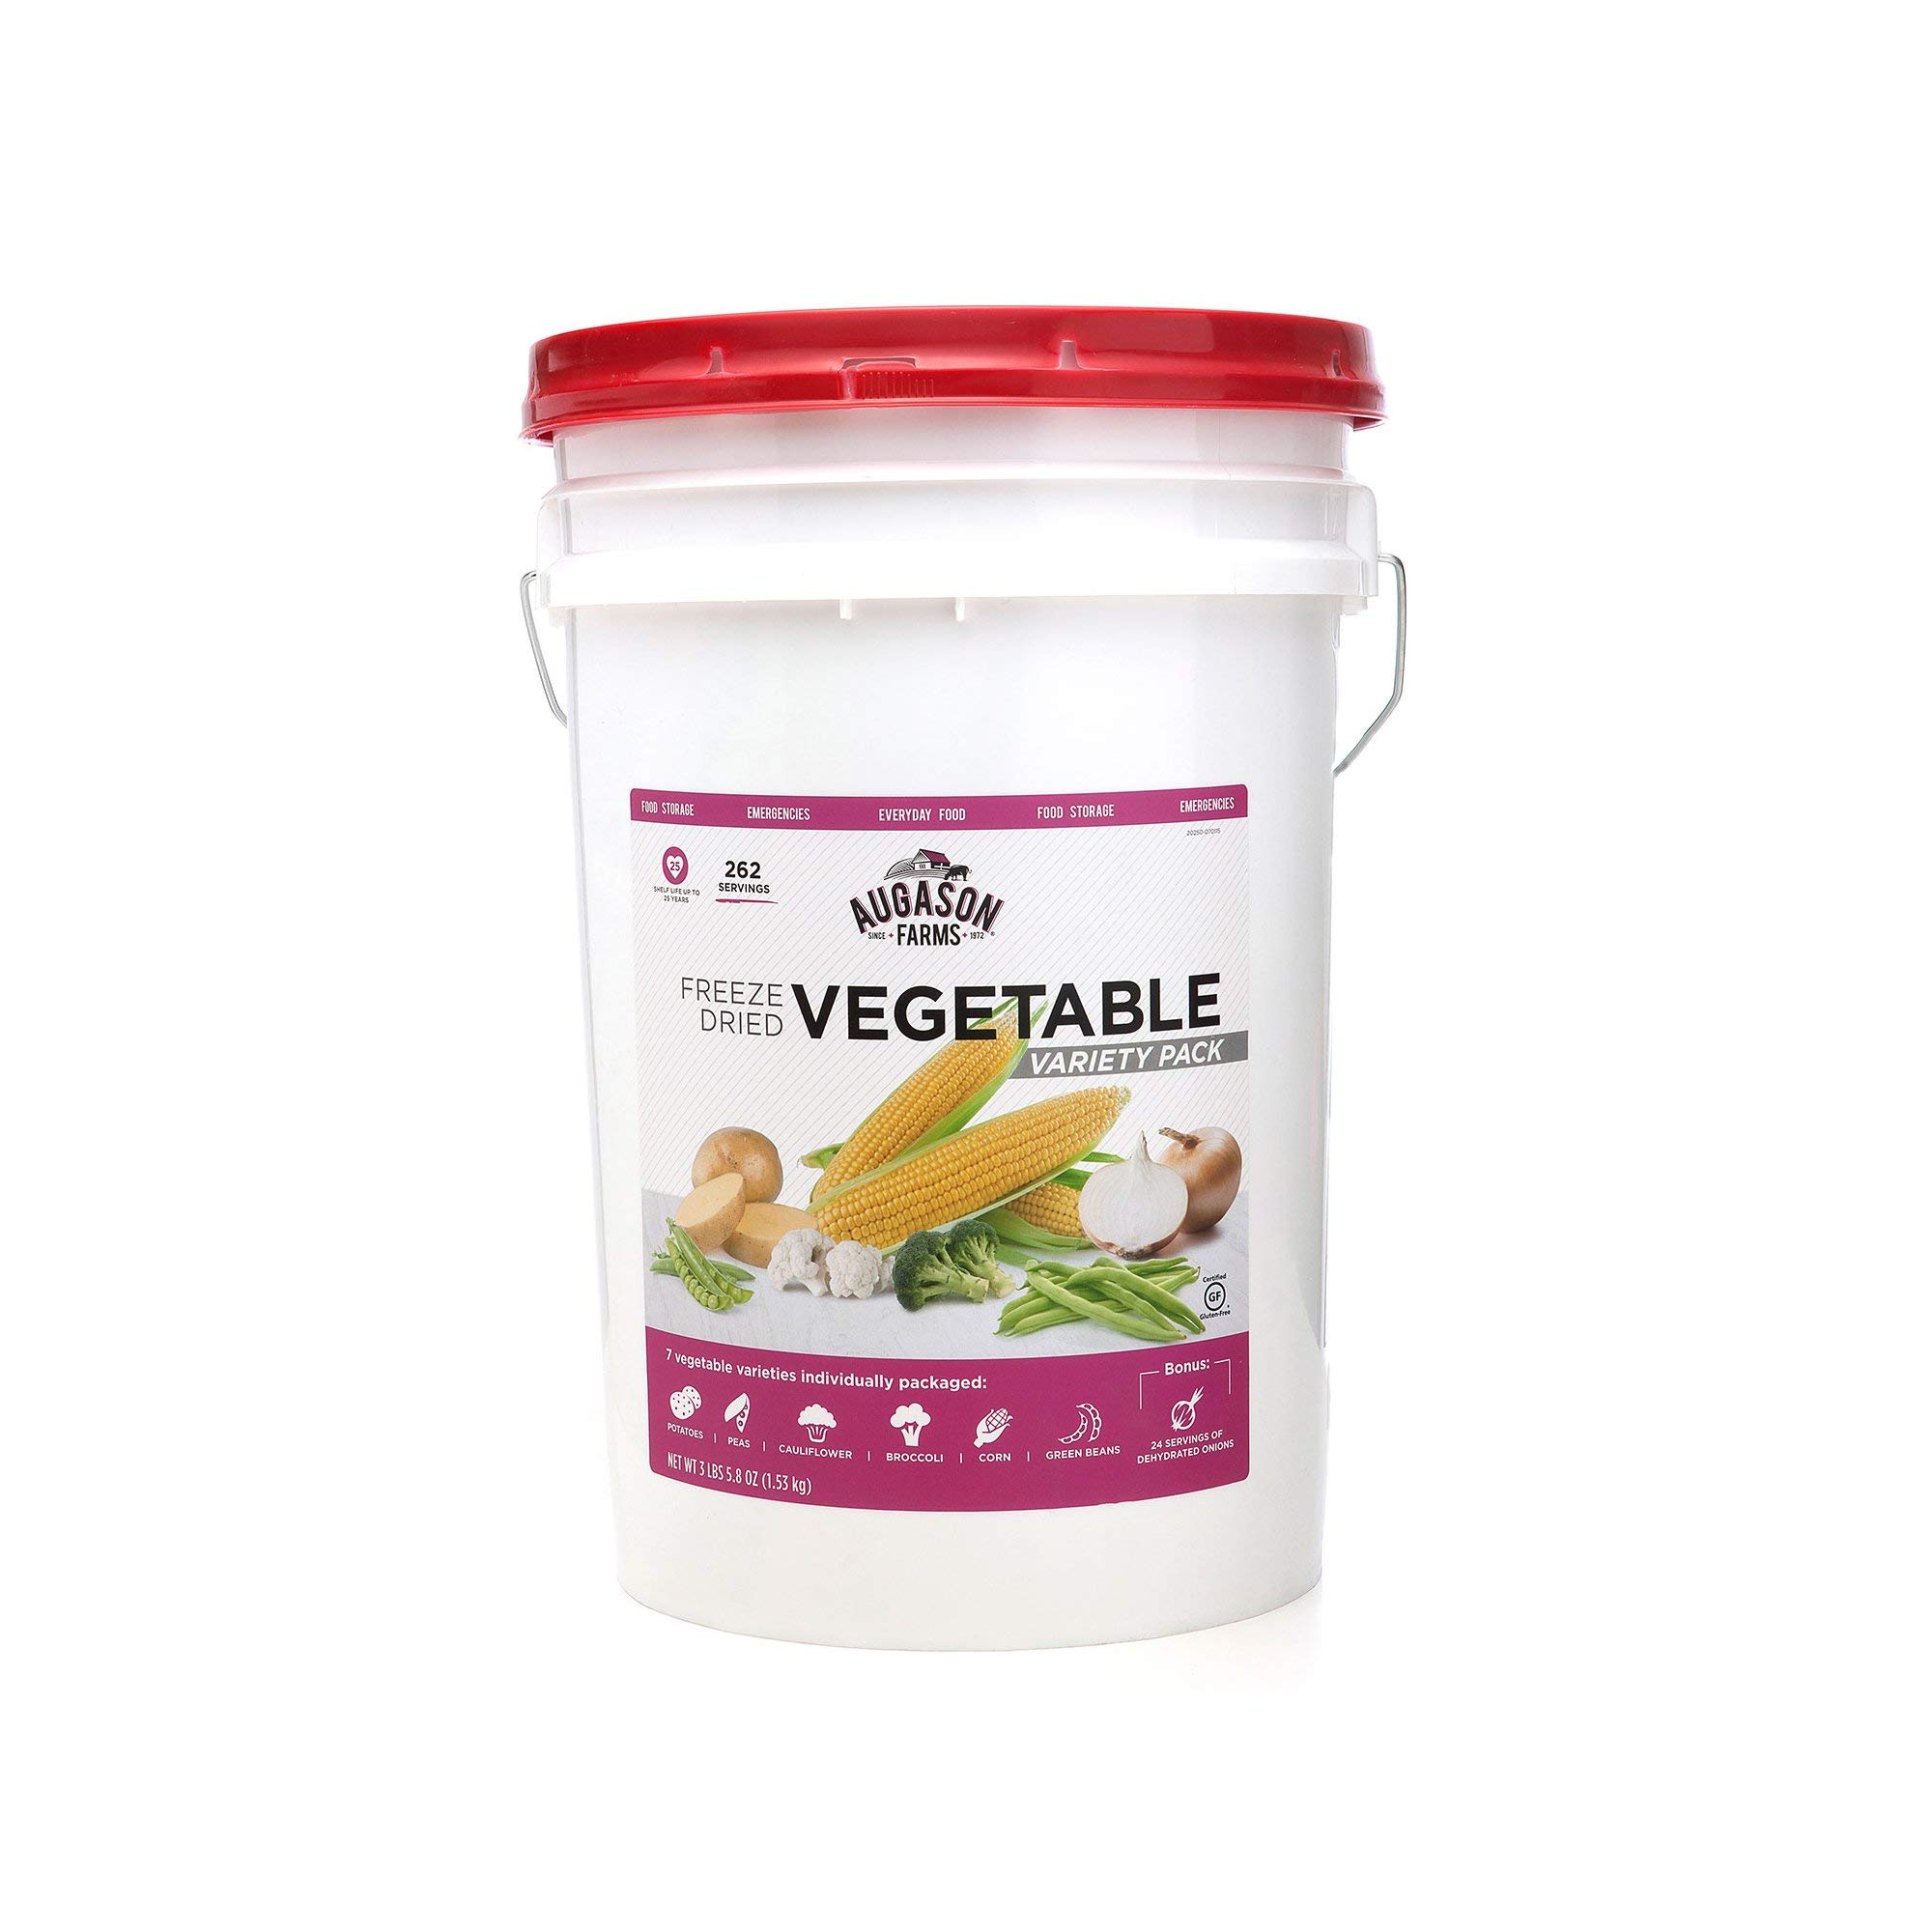 An Item of Augason Farms Freeze-Dried Vegetable Variety Pail (3 lbs. 5.8 oz.) - Pack of 1